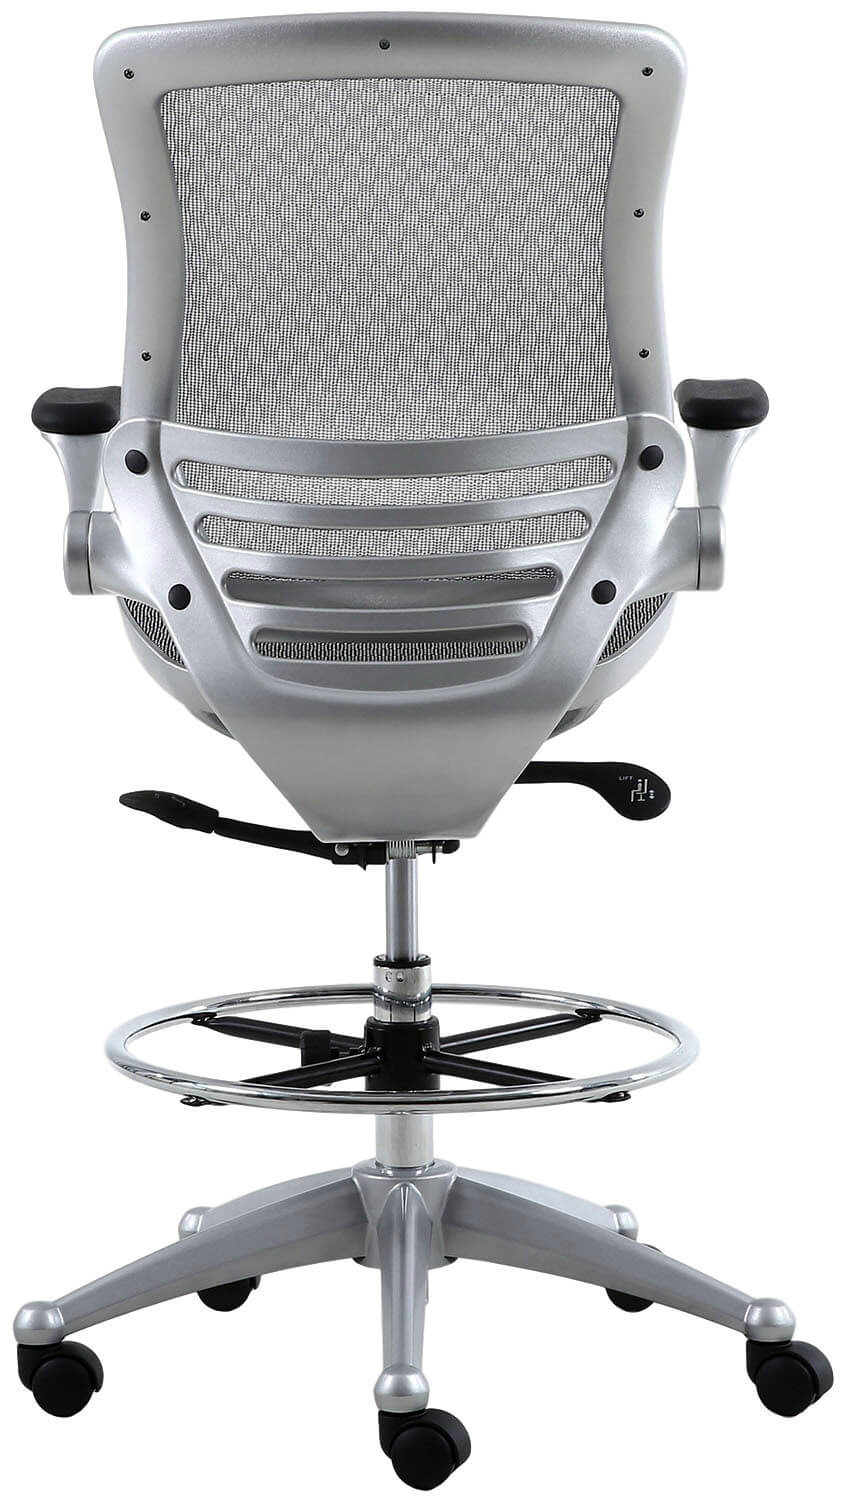 Harwick Evolve Heavy Duty Mesh Drafting Chair Platinum